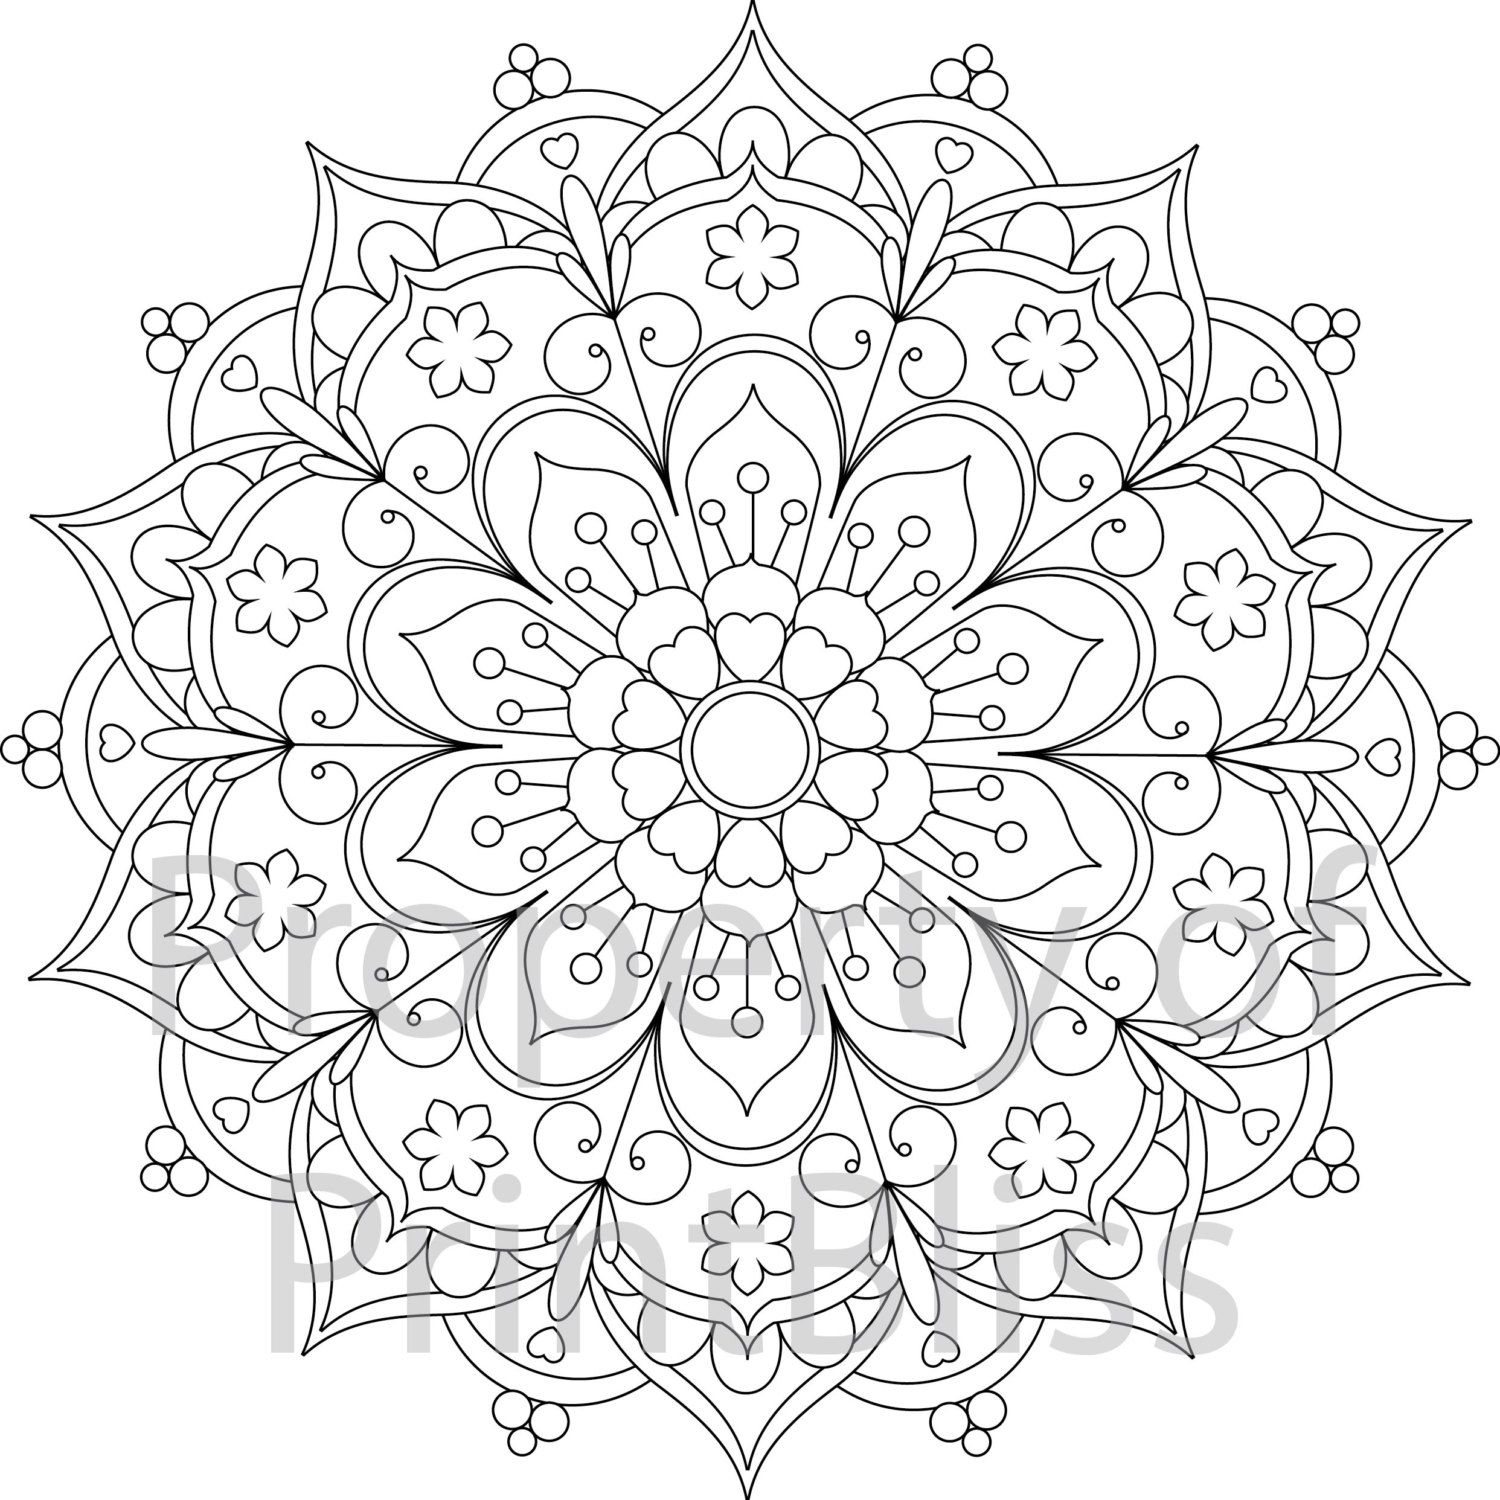 25. Flower Mandala printable coloring page. by PrintBliss ... | coloring sheets for adults mandala